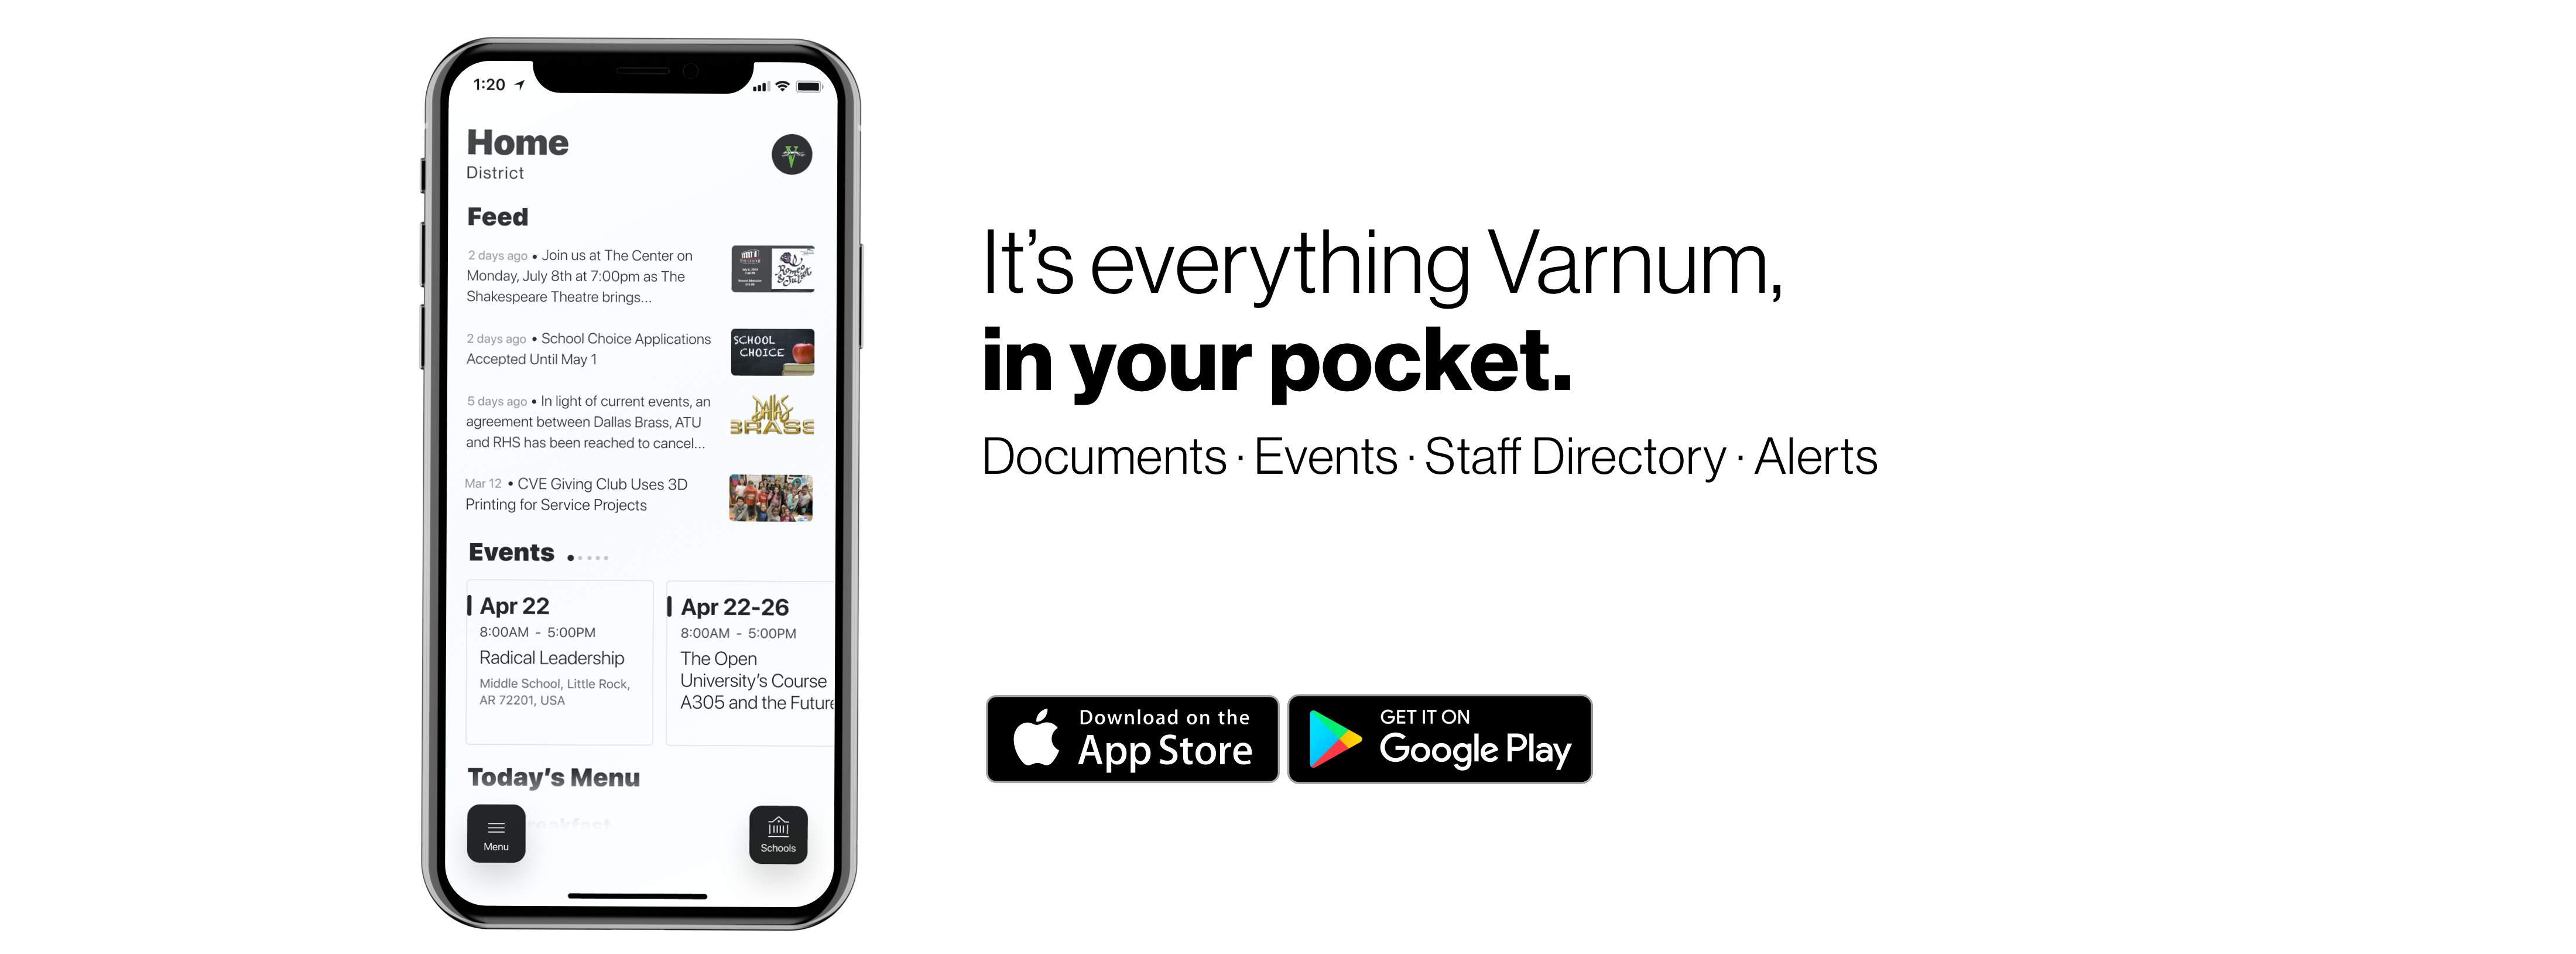 IT'S EVERYTHING VARNUM, IN YOUR POCKET.